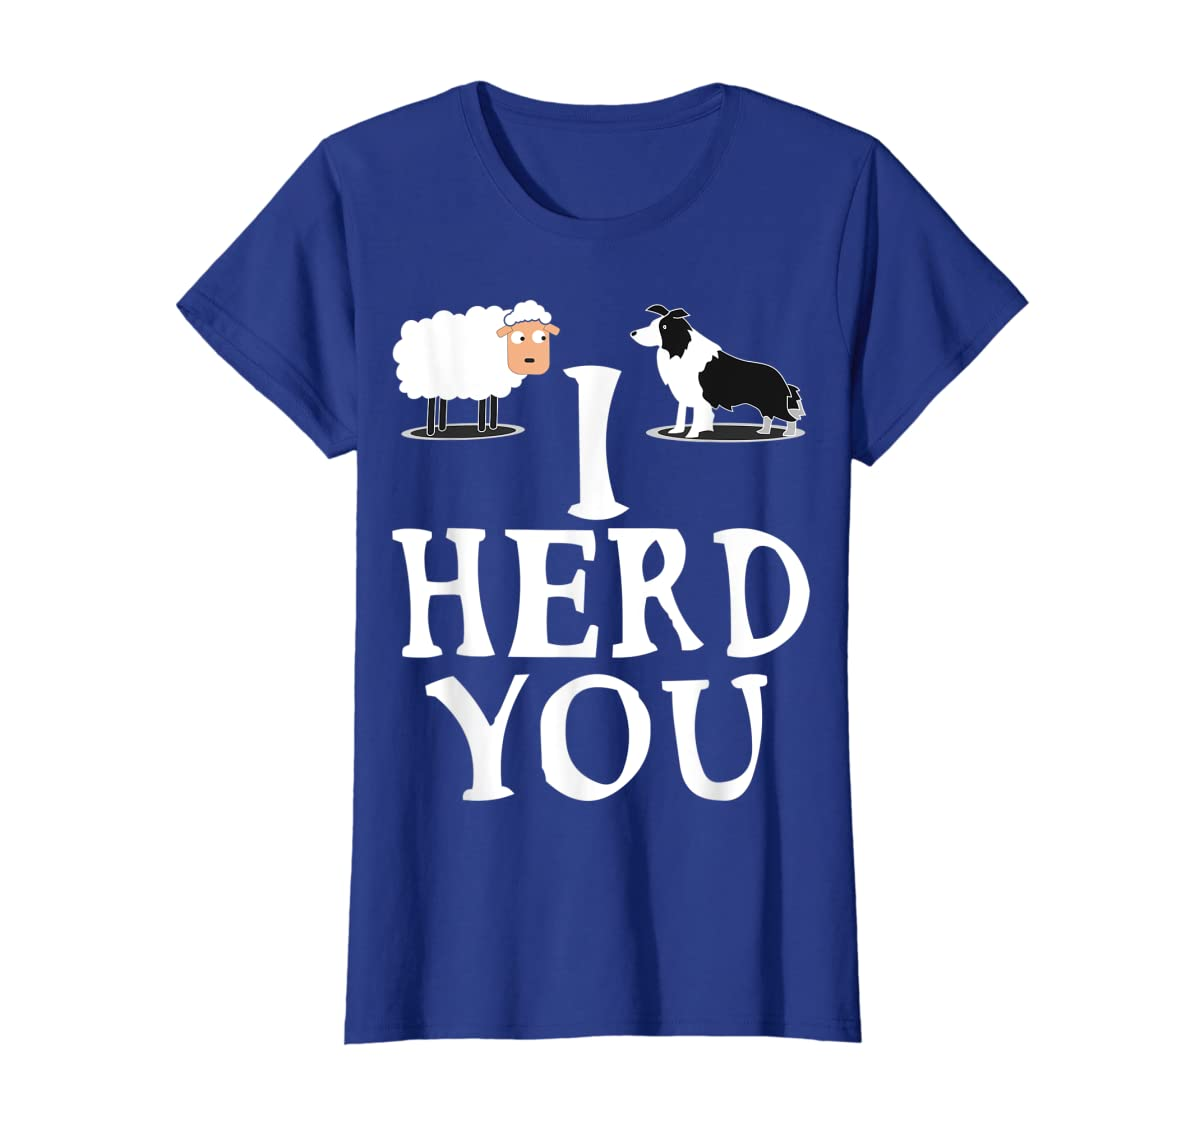 I HERD YOU BORDER COLLIE T shirt Gifts for Men Women Kids-Women's T-Shirt-Royal